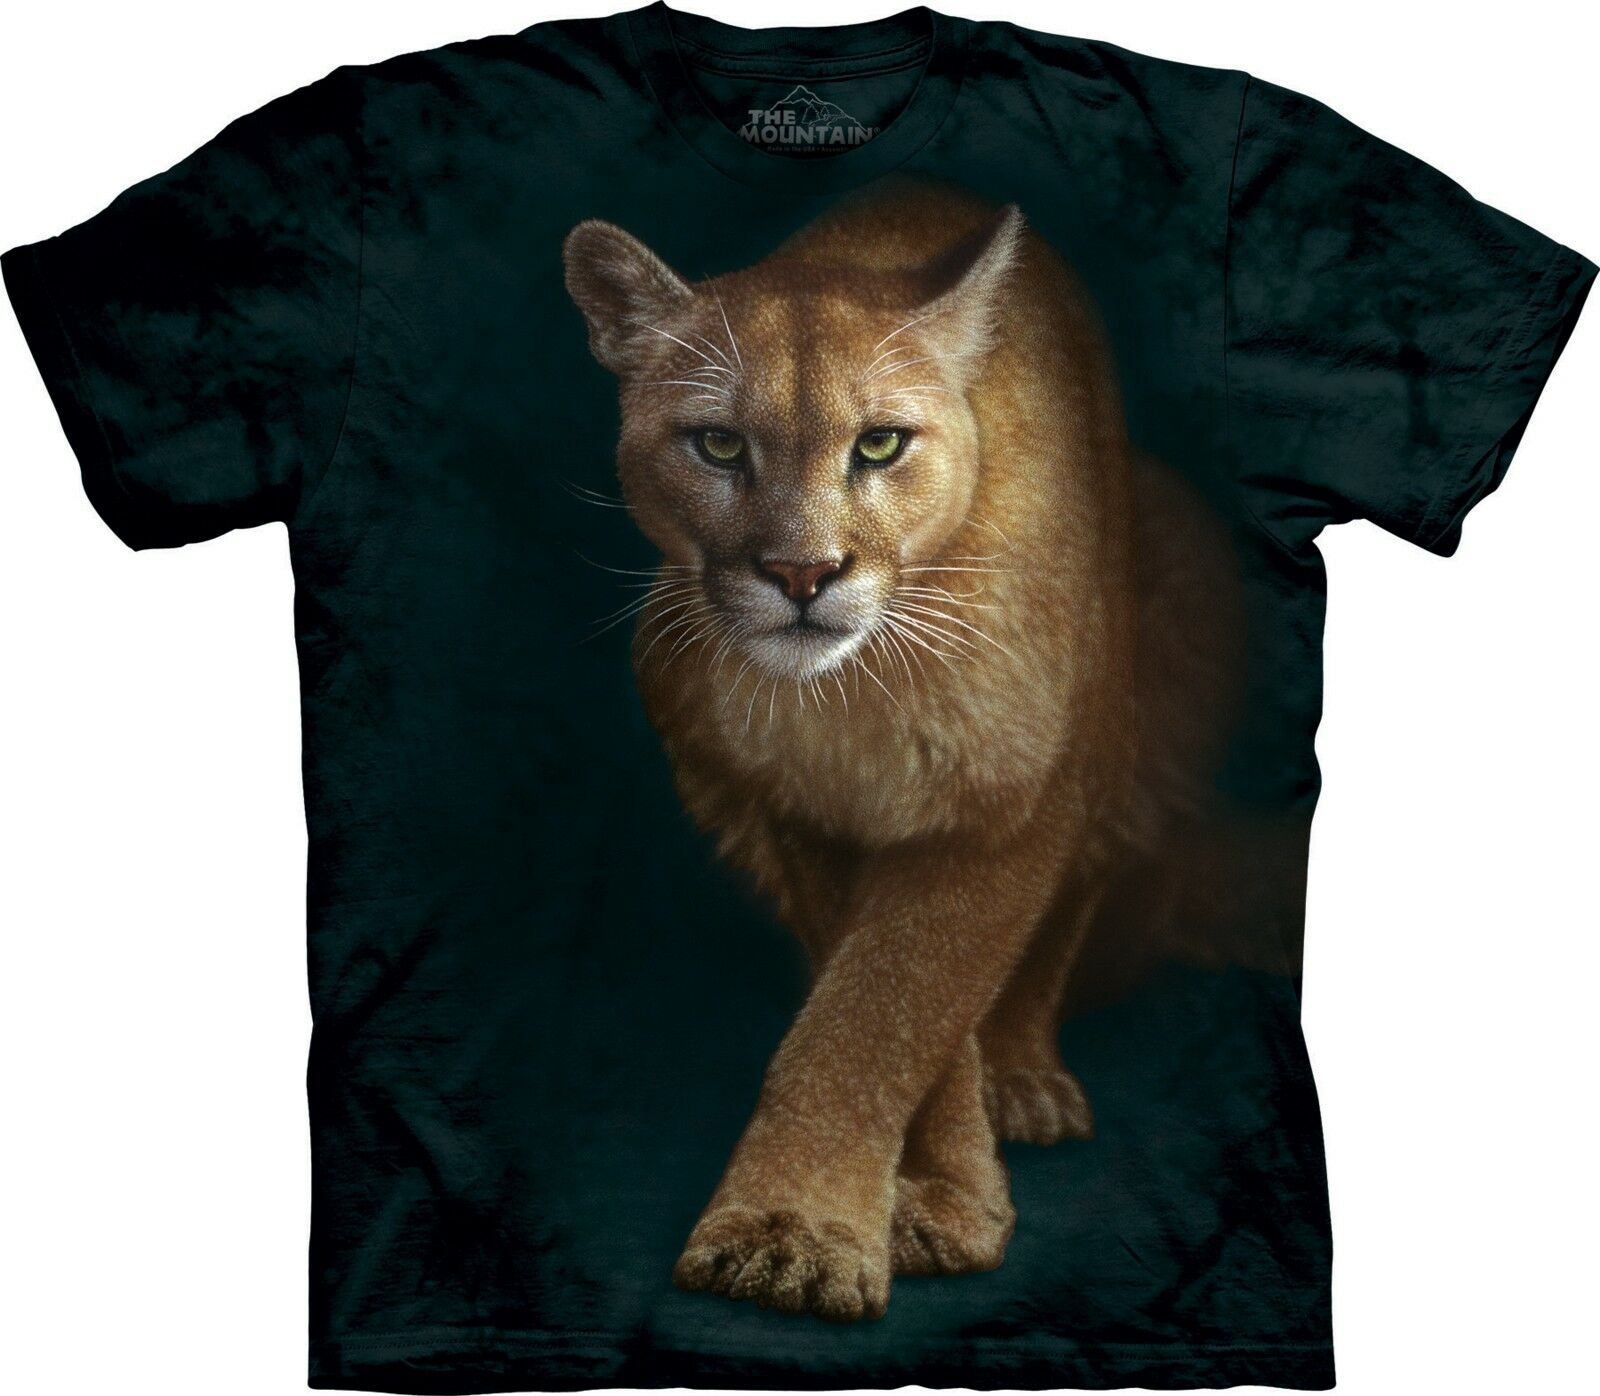 ec91a13f The Mountain Unisex Adult Emergence Animals T Shirt. Official Green Day T  Shirt Mens Drips Top Tee Tshirt. MARVEL × UNIQLO UTGP 2018 Graphic ...